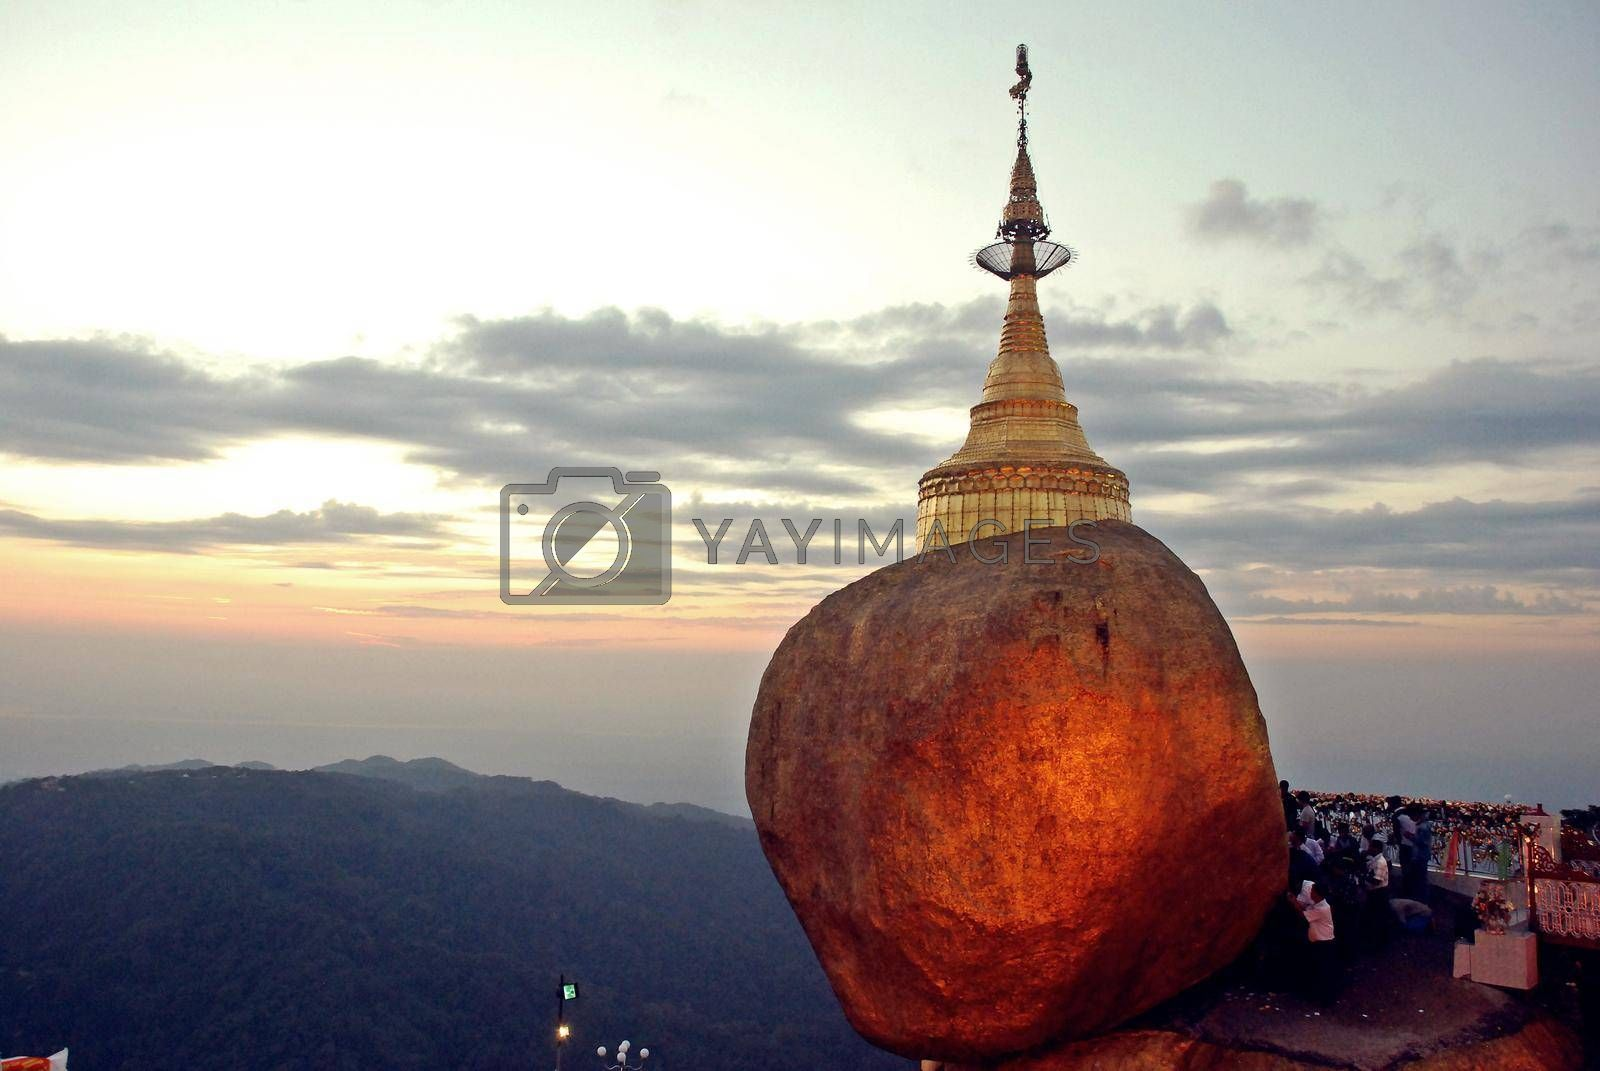 Kyaiktiyo Pagoda, Golden Rock is one of the top destinations and a spectacular sight of Myanmar.